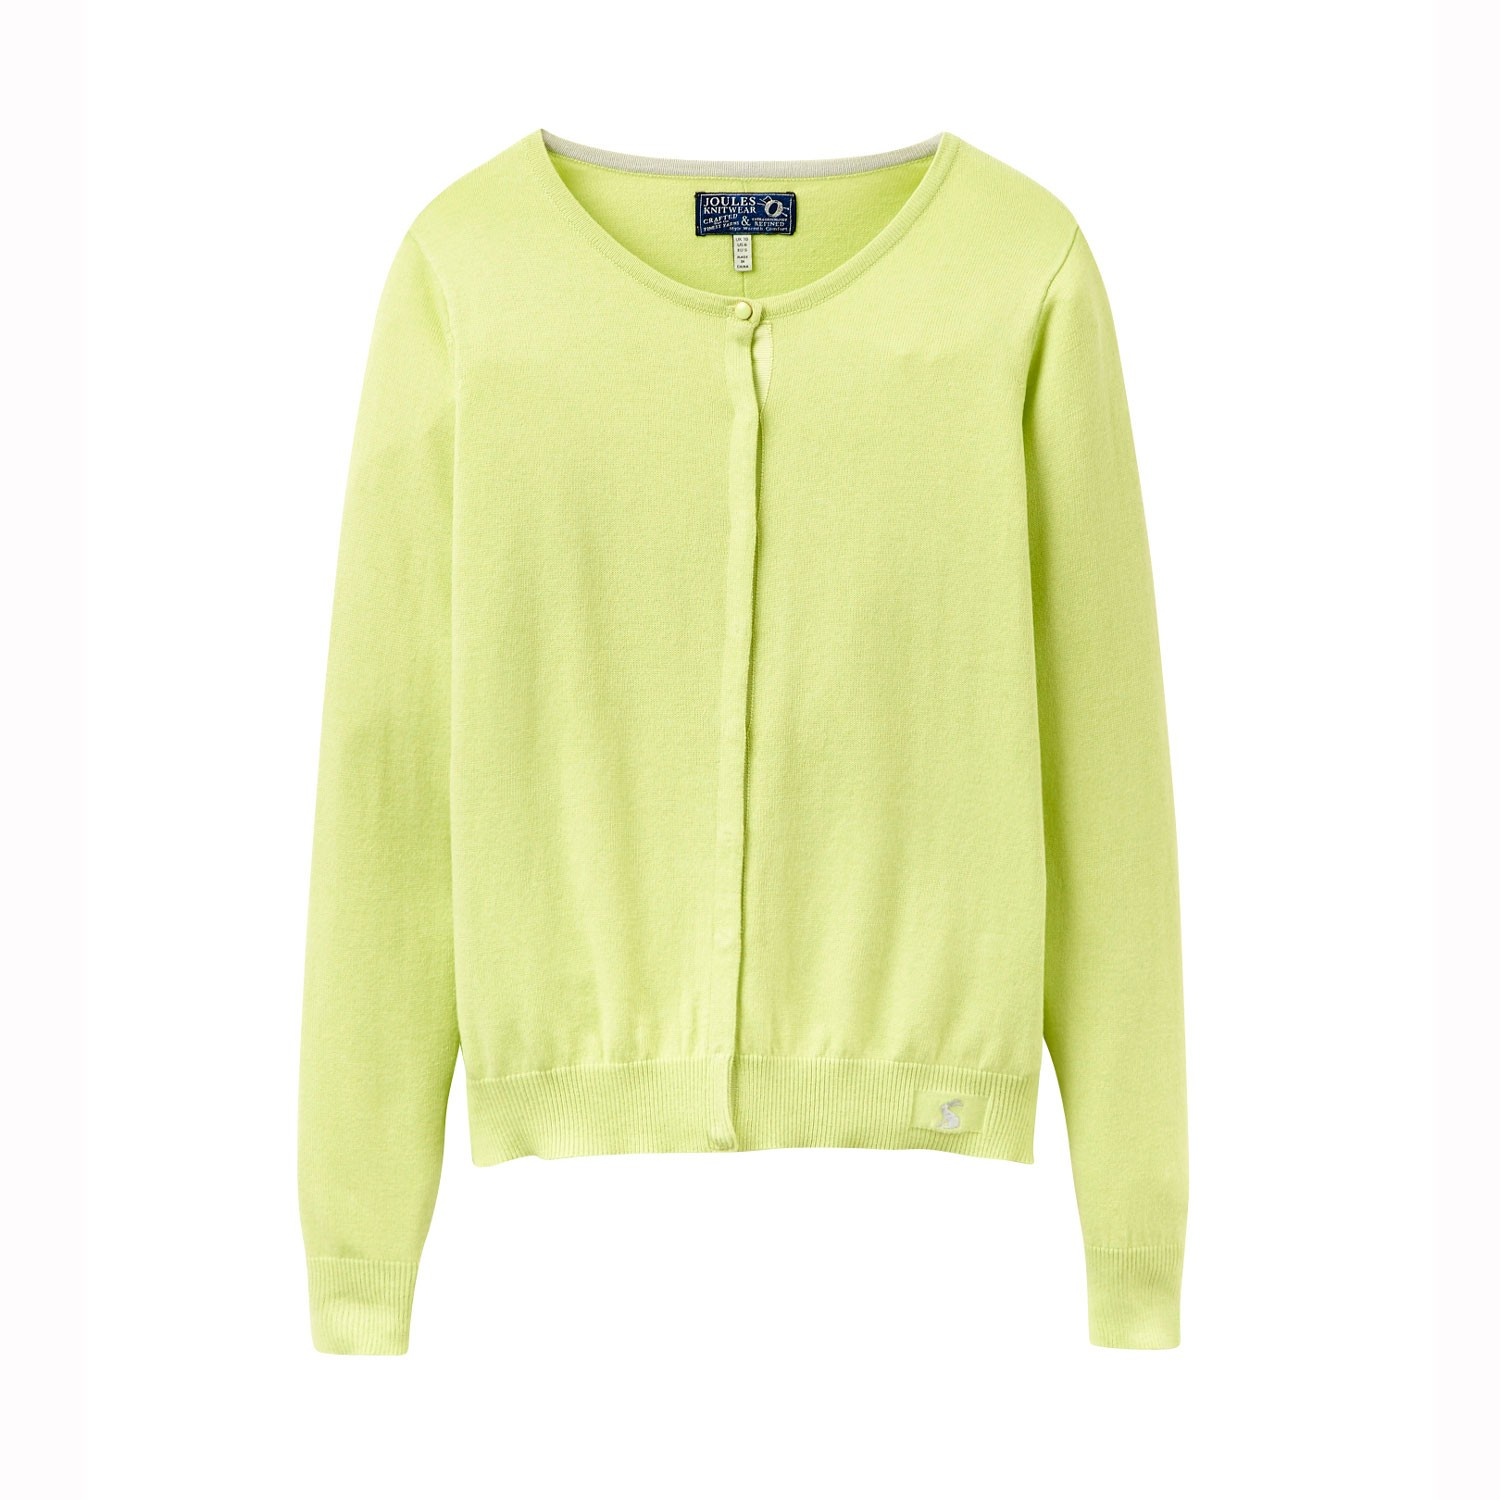 JOULES - FAITH BUTTON THROUGH CARDIGAN IN LIME - £39.95